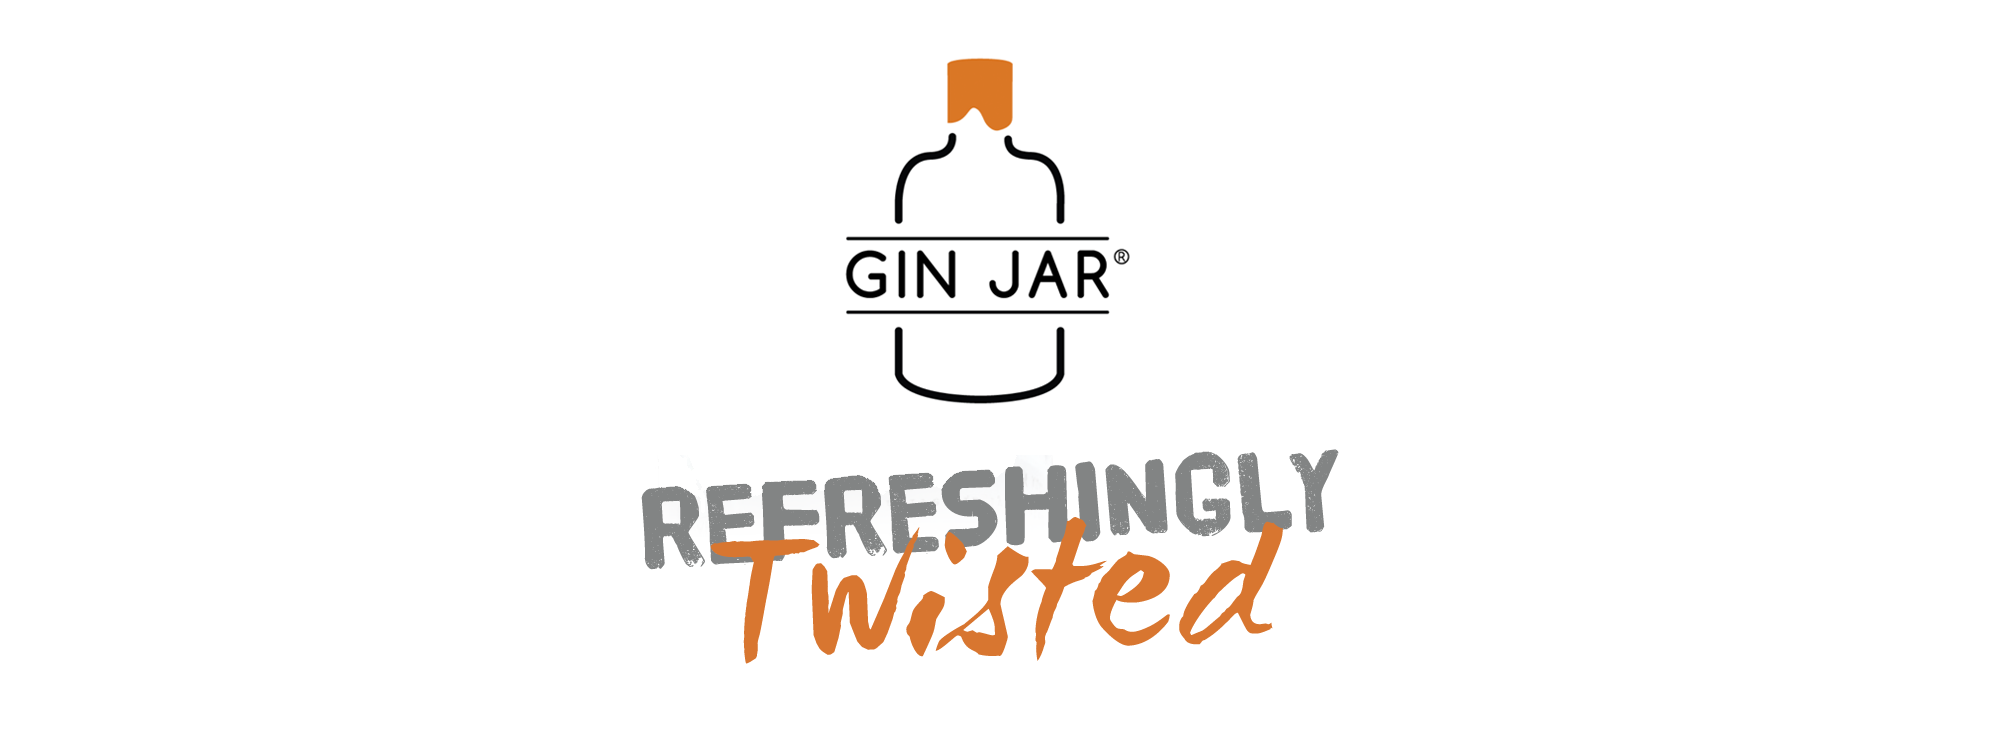 GinJar - Refreshingly Twisted